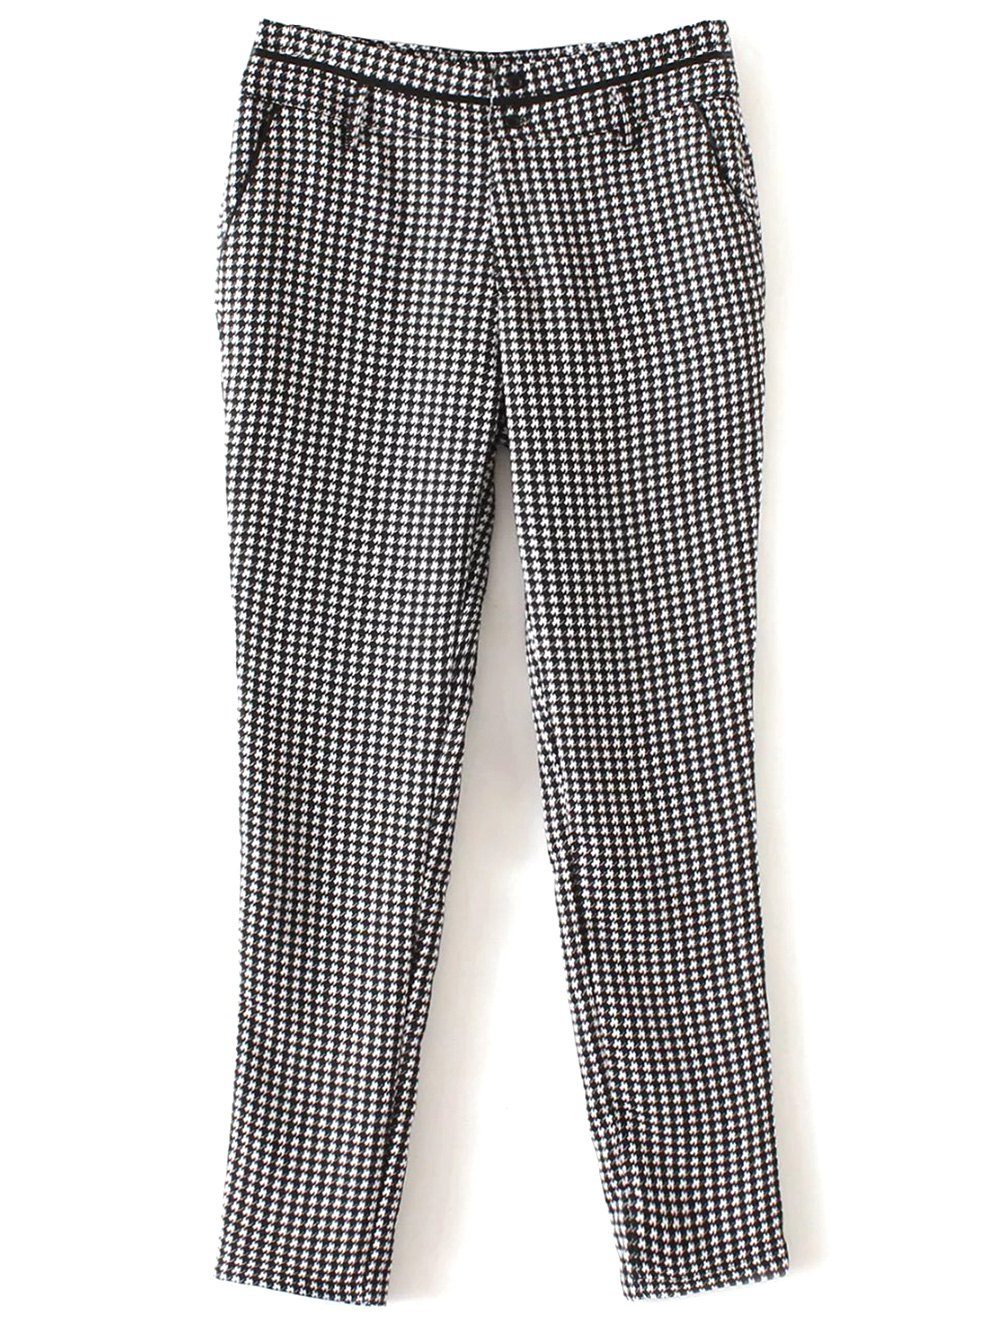 Houndstooth Tapered TrousersClothes<br><br><br>Size: XL<br>Color: WHITE AND BLACK